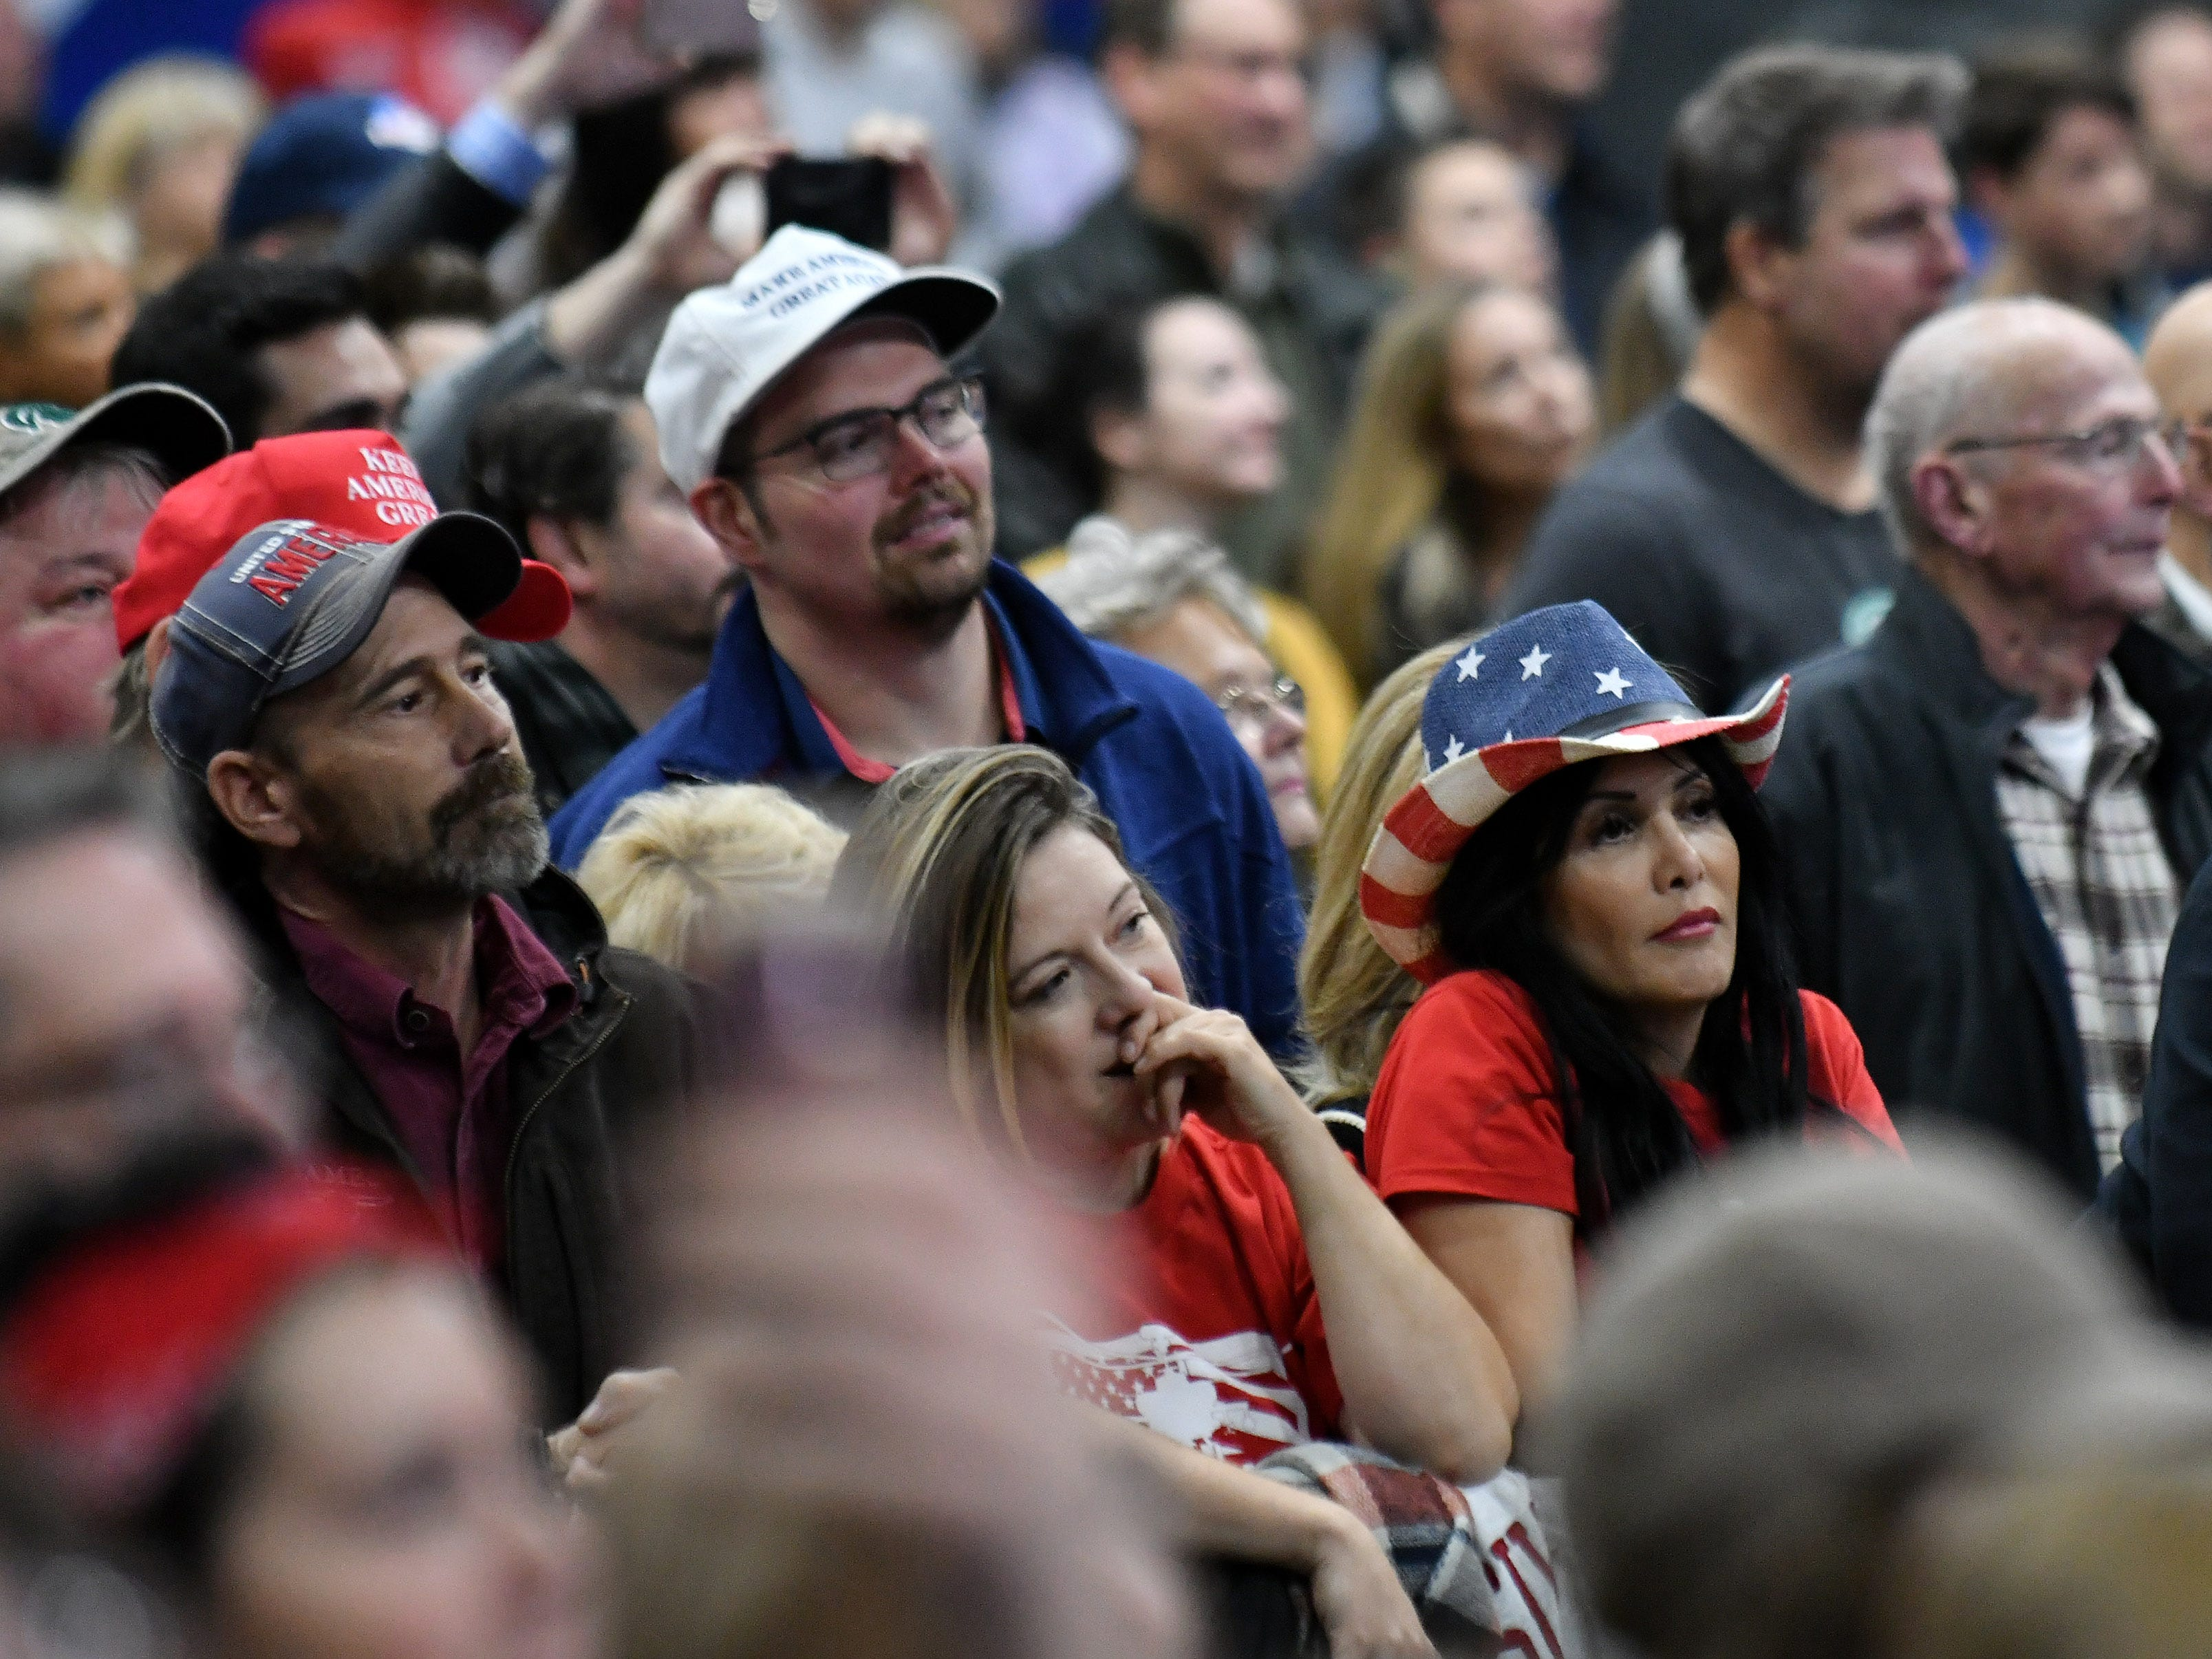 Supporters listen to Ted Nugent during the rally.